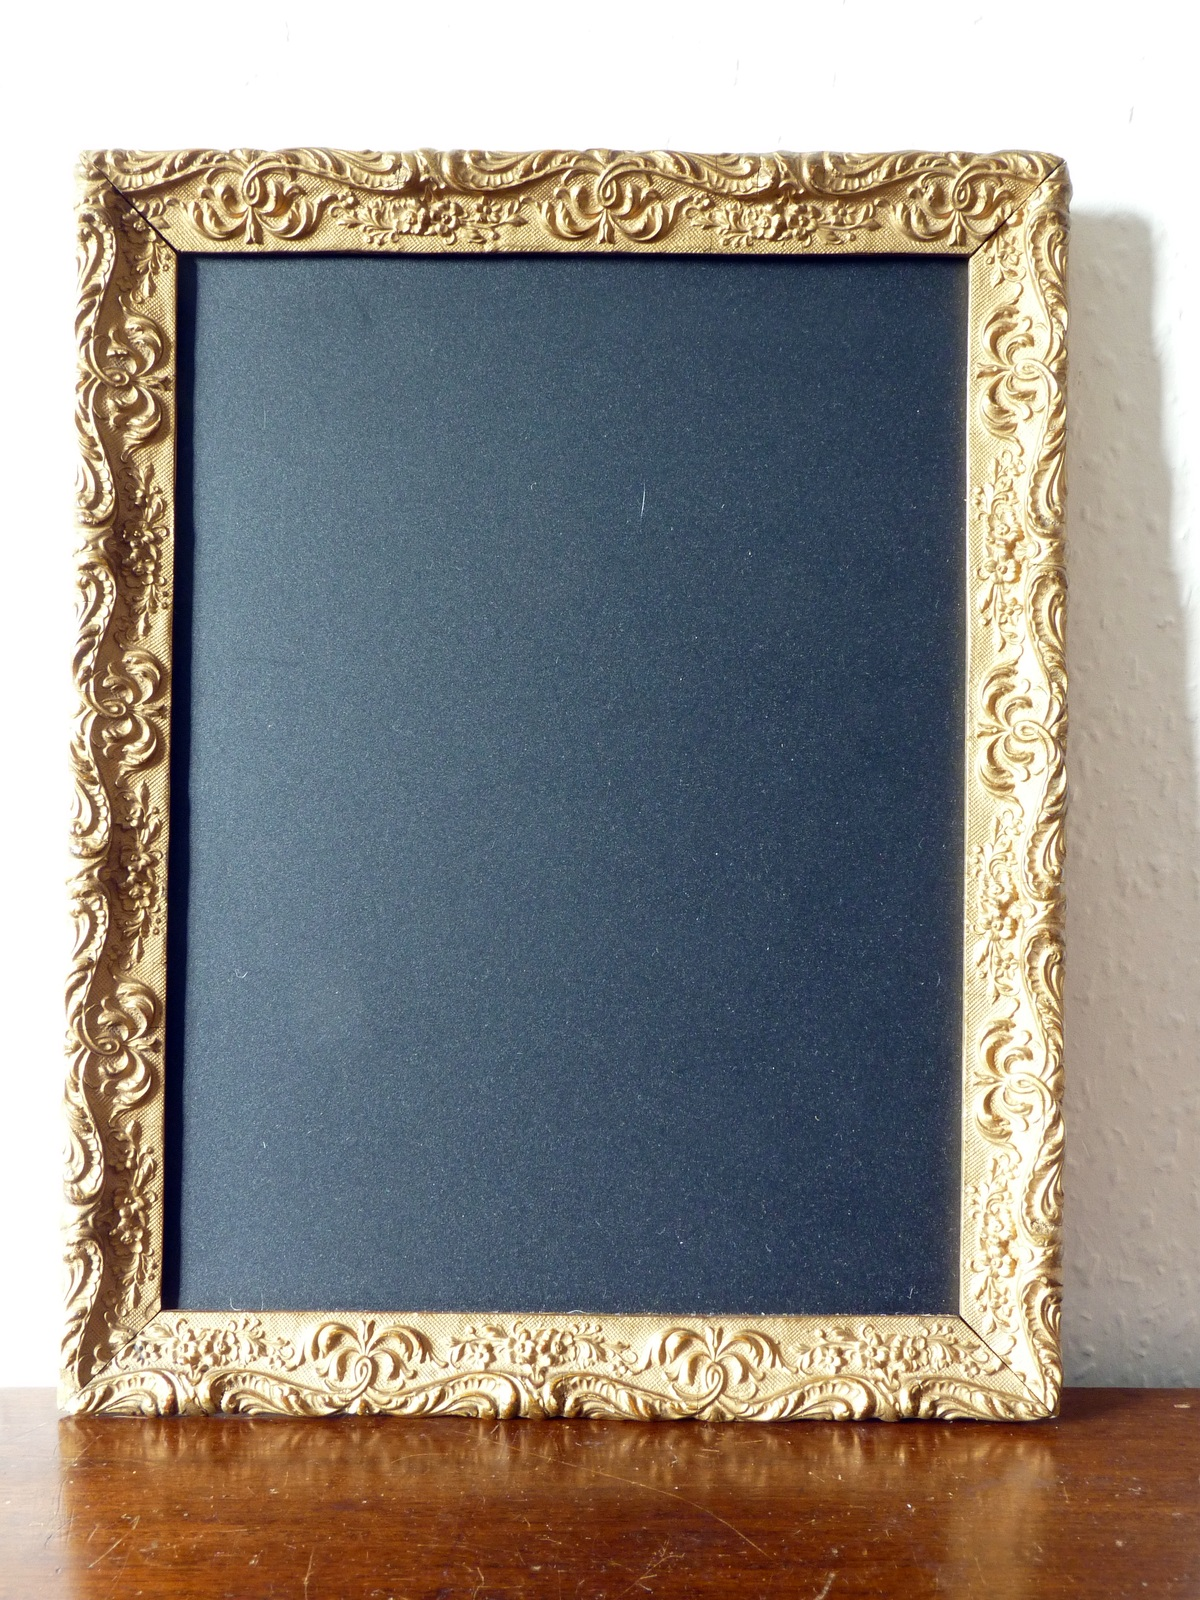 Small Antique Gilt Gesso Decorative Frame Blackboard